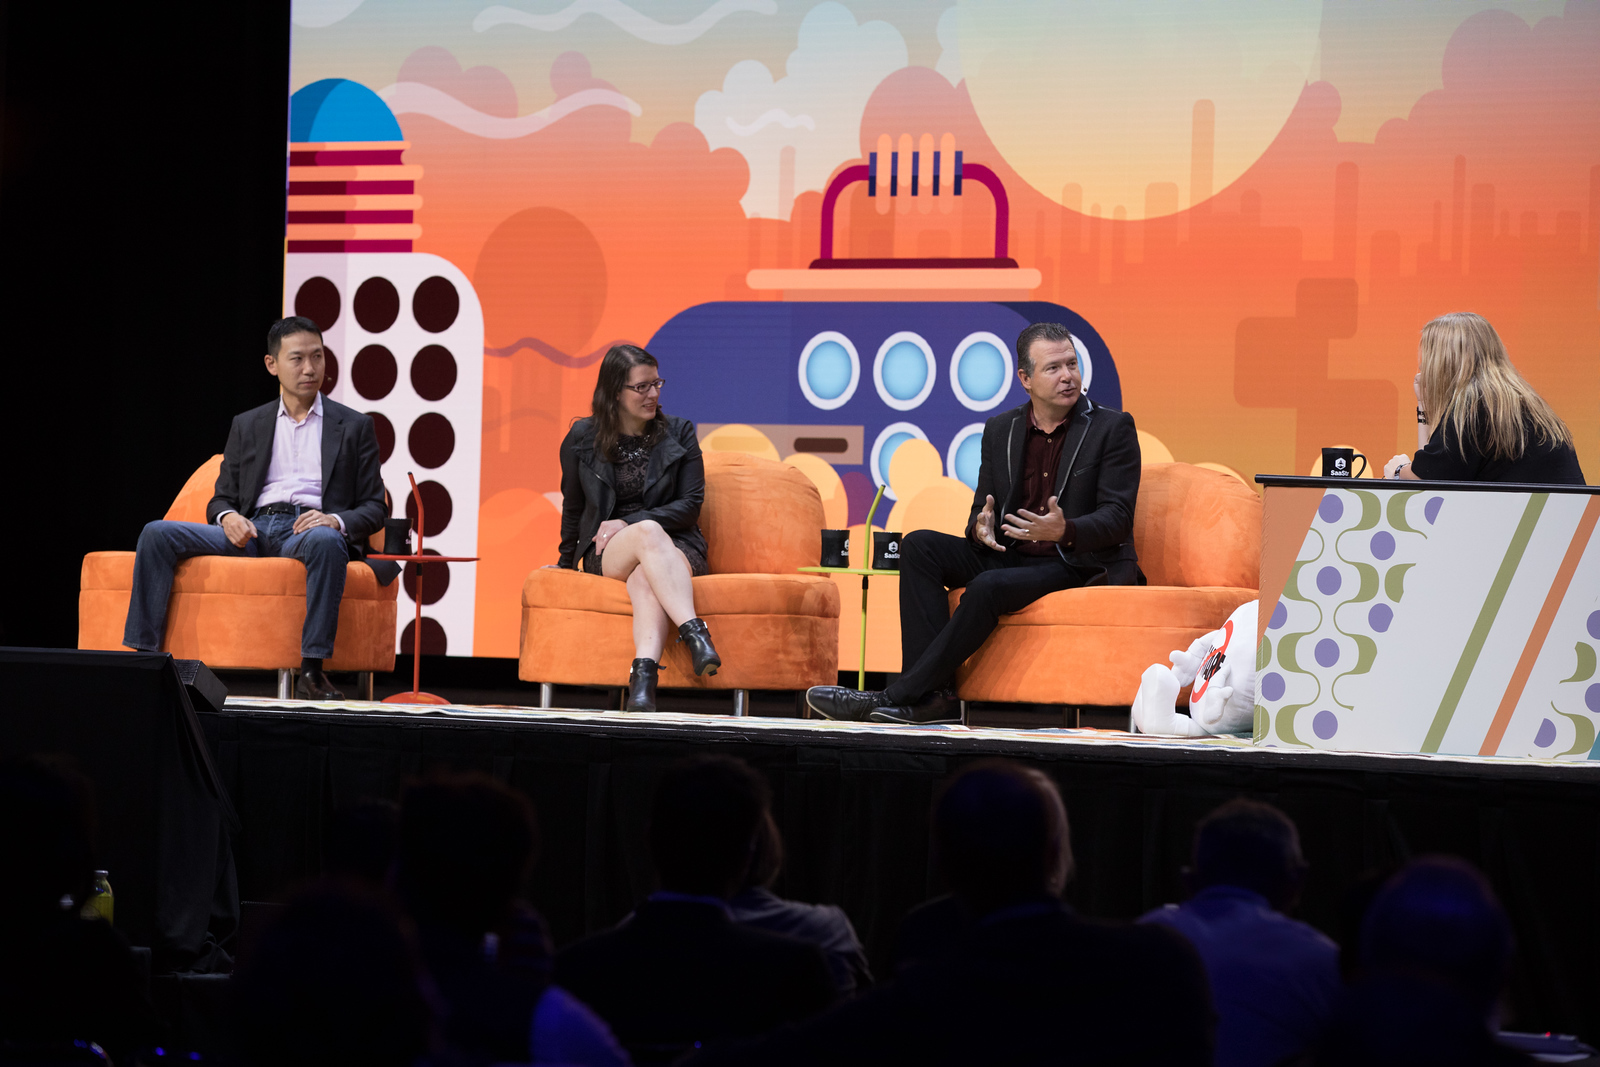 The Salesforce MBA: What We Learned Leyla Seka EVP APPEXCHANGE / SALESFORCE  George Hu FORMER COO / SALESFORCE  Cathy Polinsky CTO / STITCH FIX Tod Nielsen PRESIDENT & CEO / FINANCIALFORCE